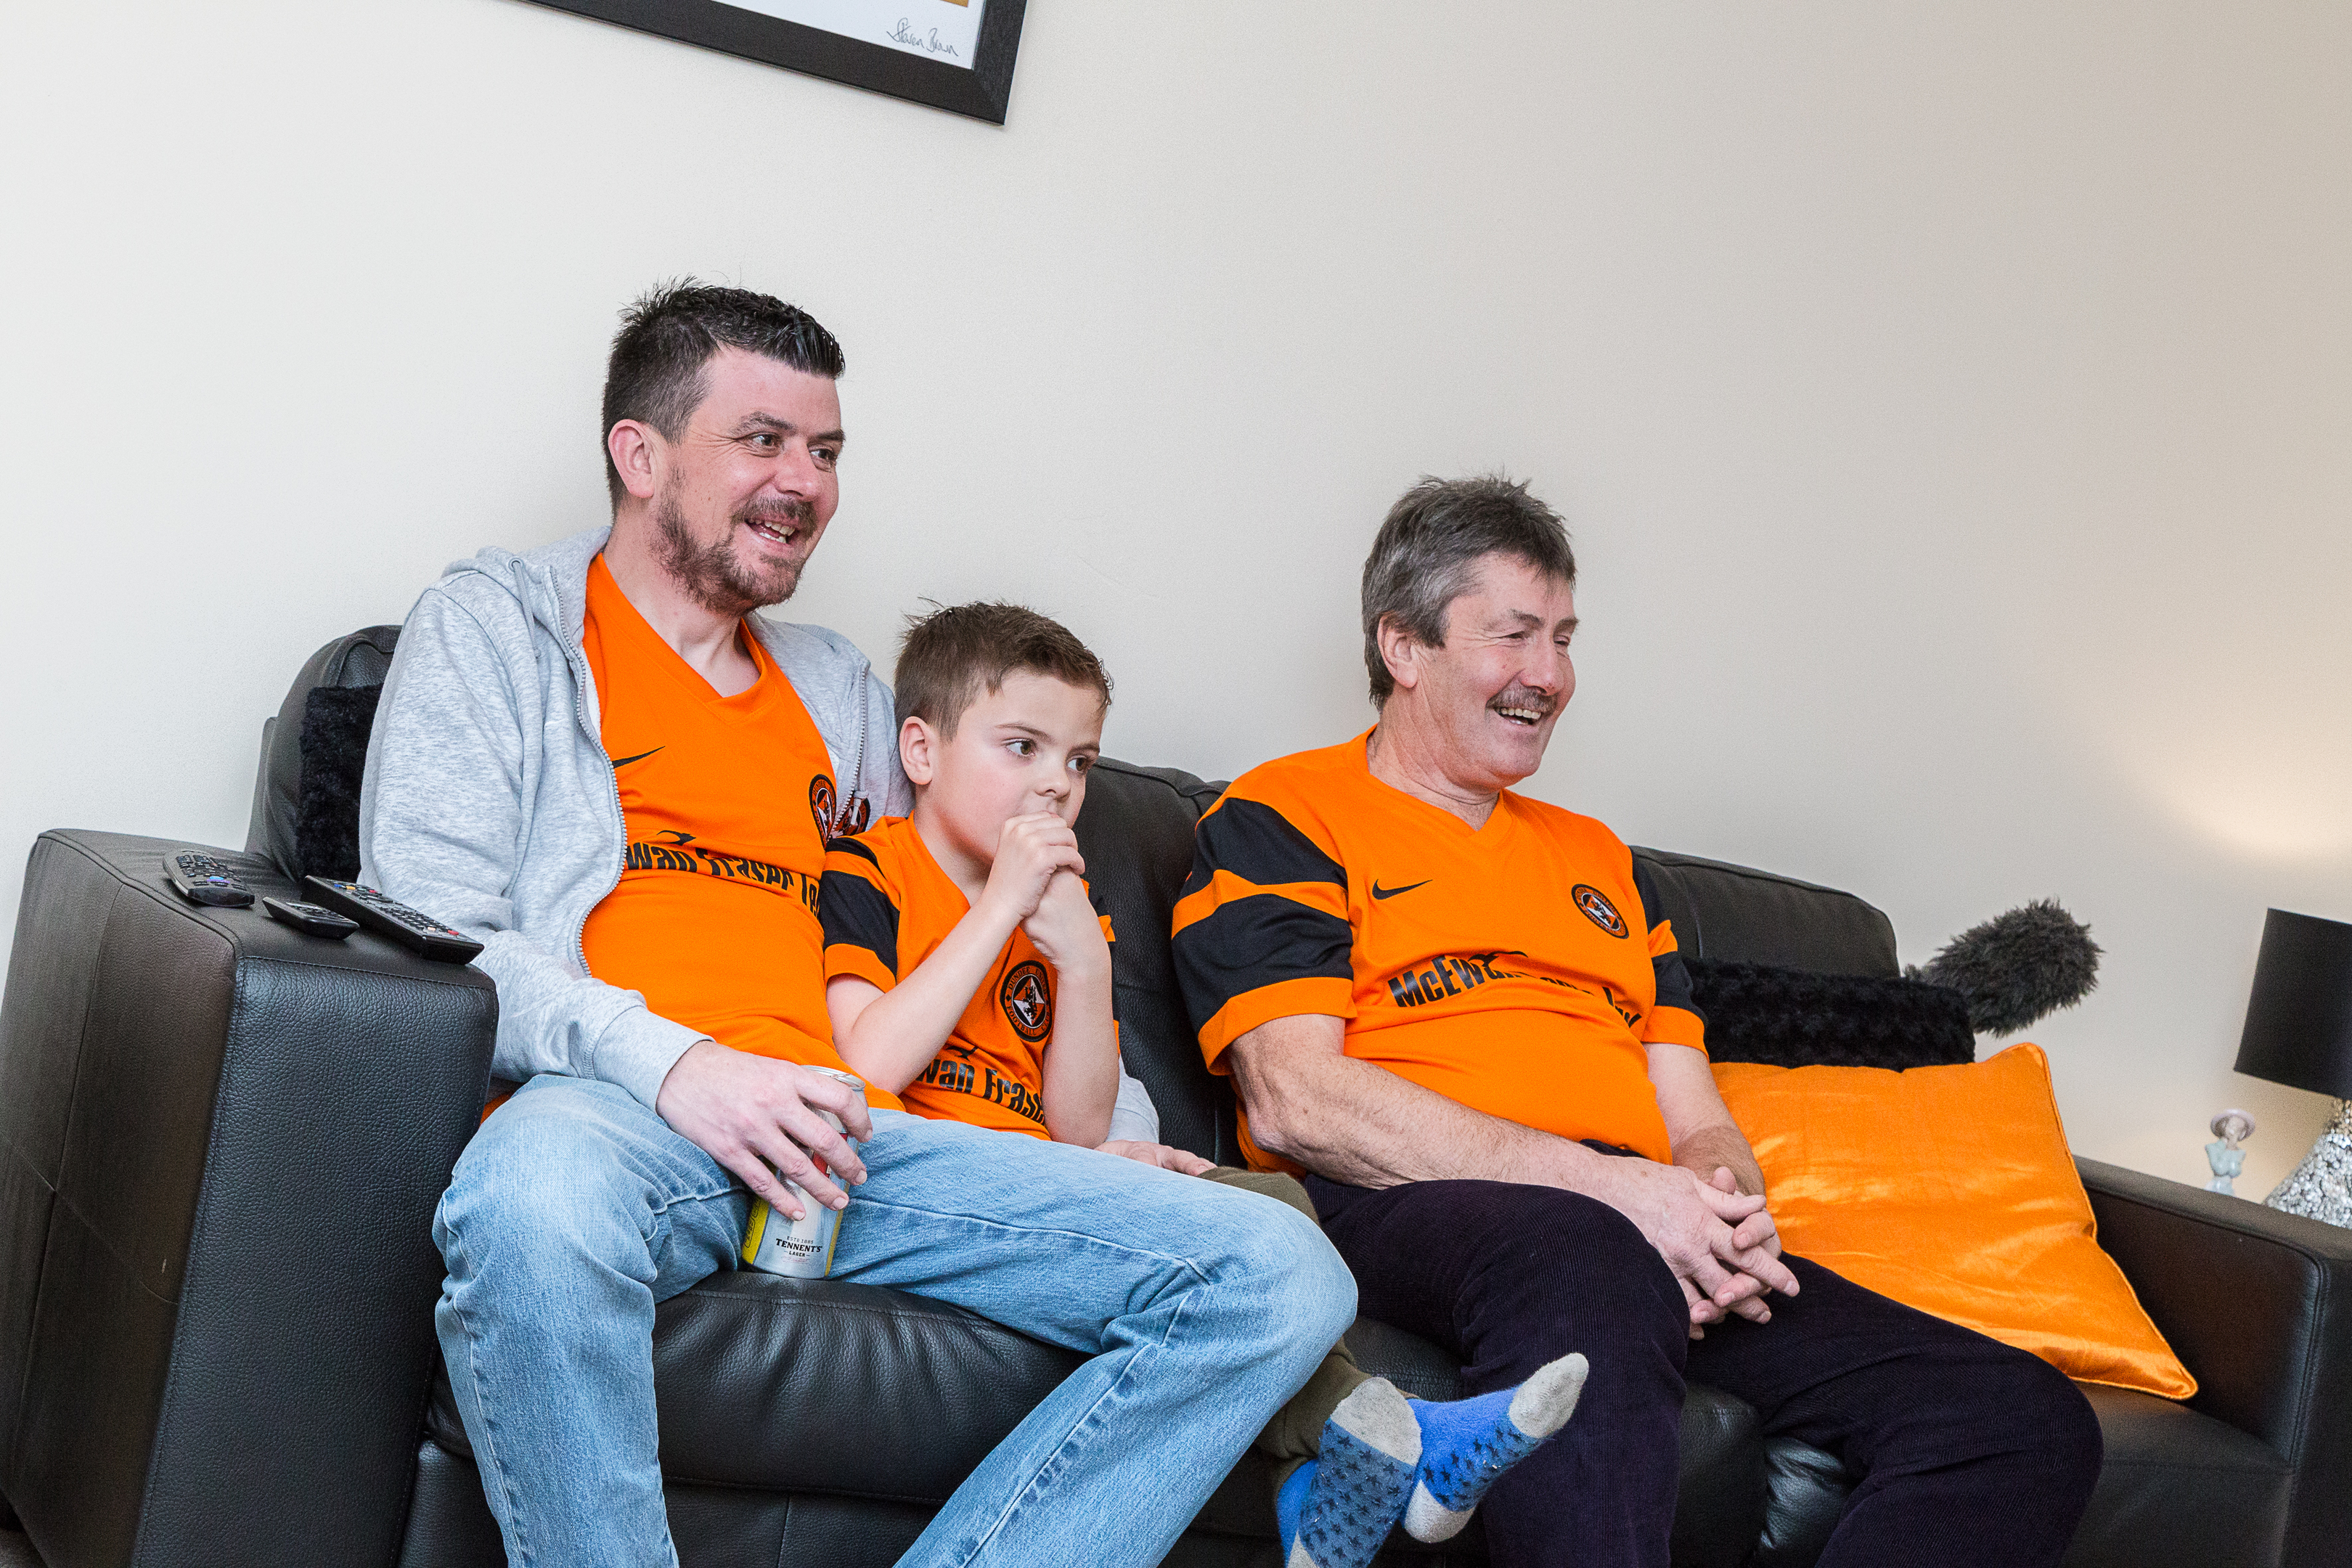 Utd legend Hamish watches the game with Martin and his son, also named Hamish.